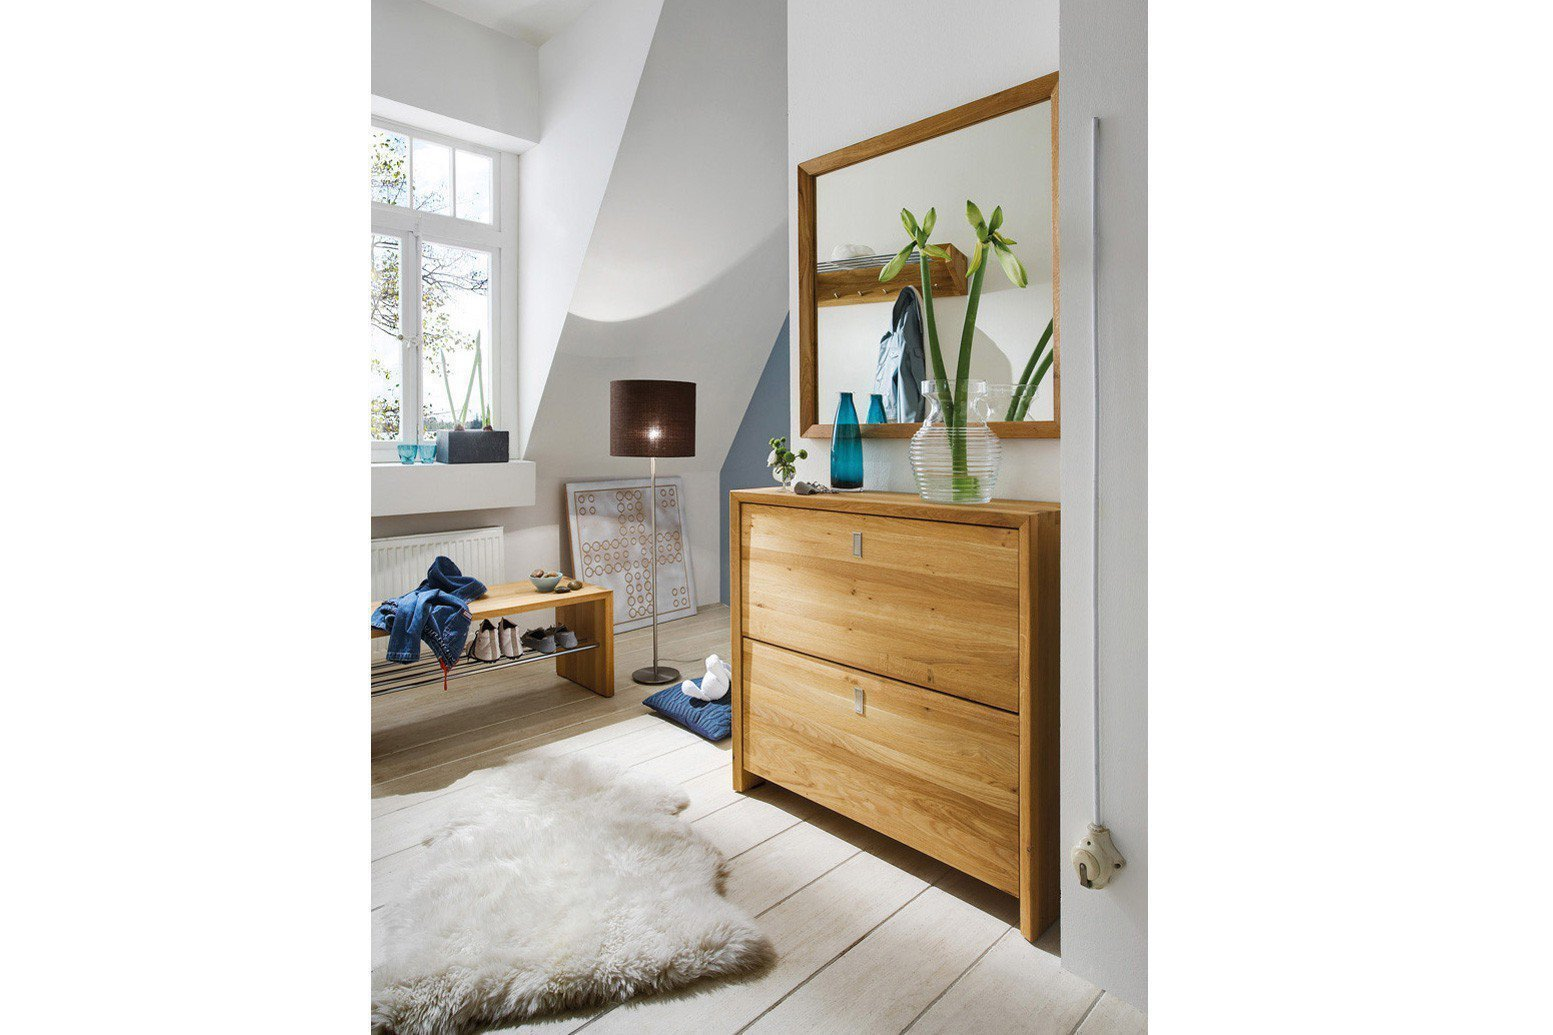 garderobe kajsa in wildeiche skandinavische m bel. Black Bedroom Furniture Sets. Home Design Ideas